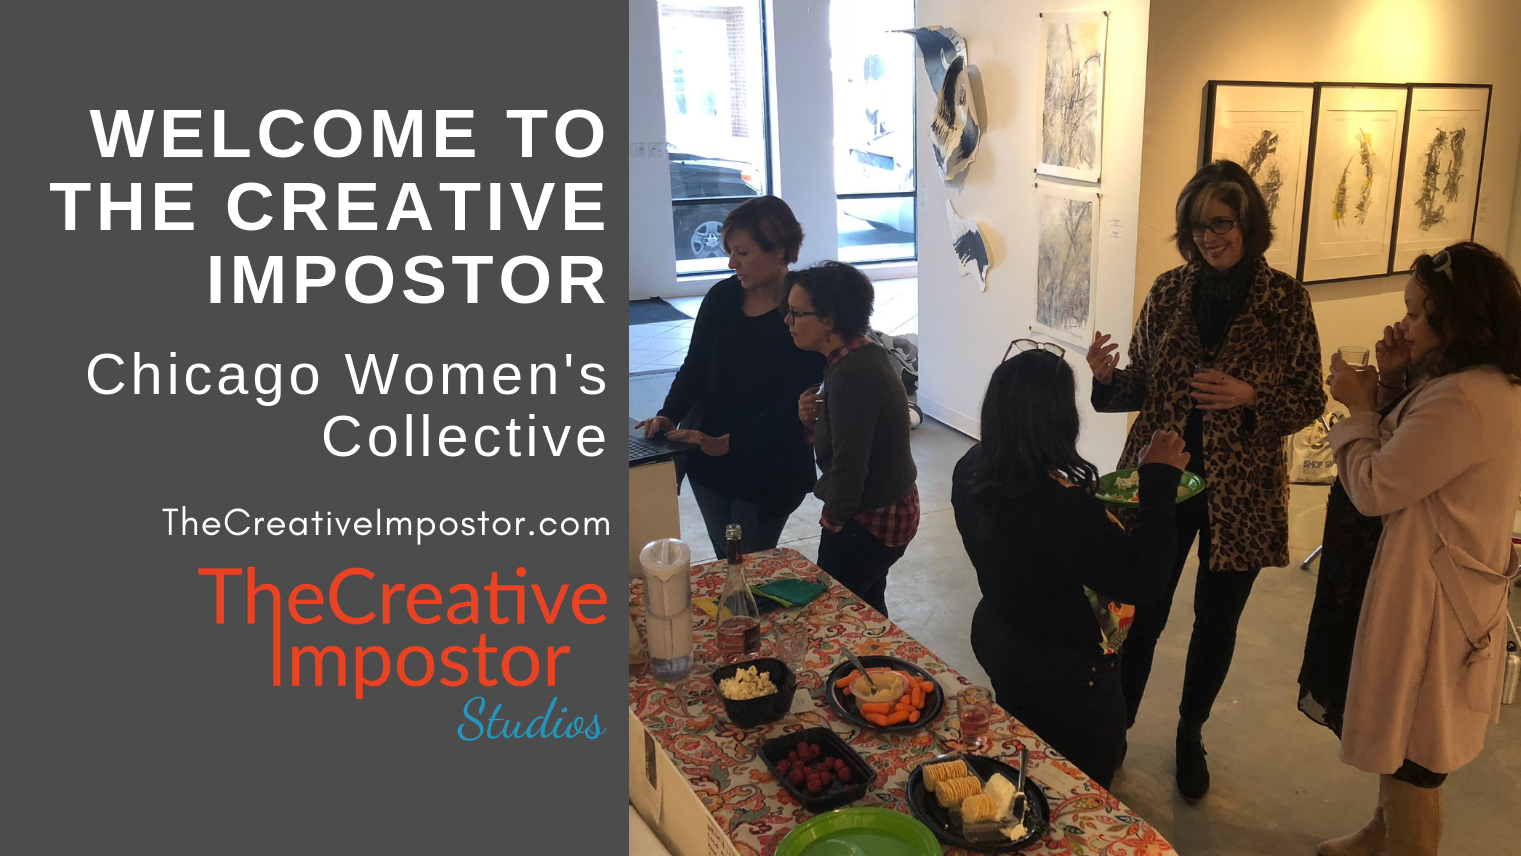 The Creative Impostor: Chicago Women's Collective